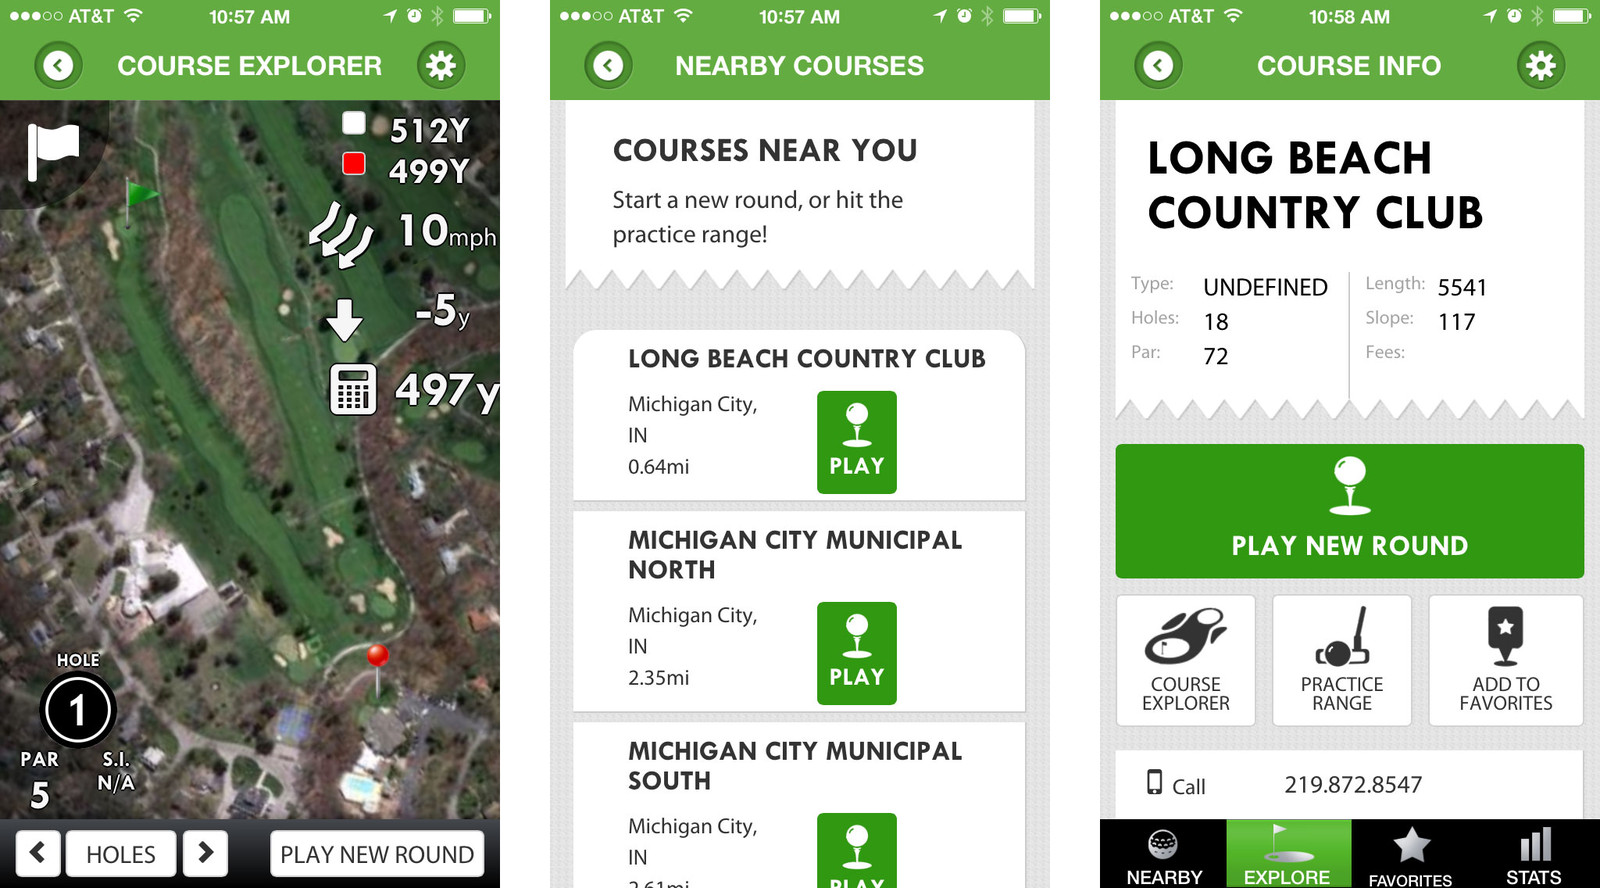 Best golfing apps for iPhone: Golf GPS and Scorecard by Swing by Swing